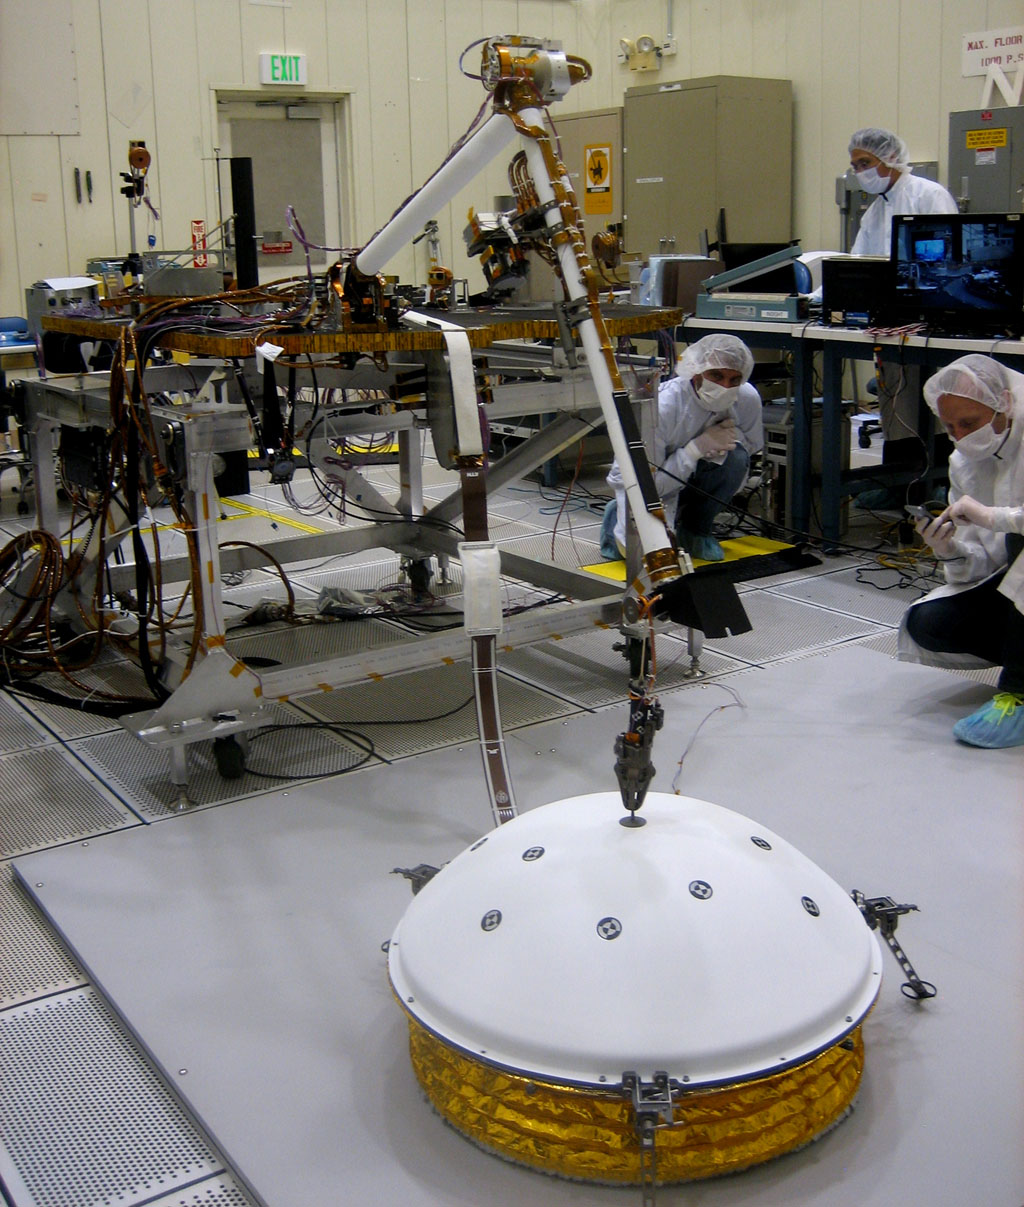 This image shows testing of InSight's robotic arm inside a clean room at NASA's Jet Propulsion Laboratory, deploying a test model of a protective covering for SEIS.